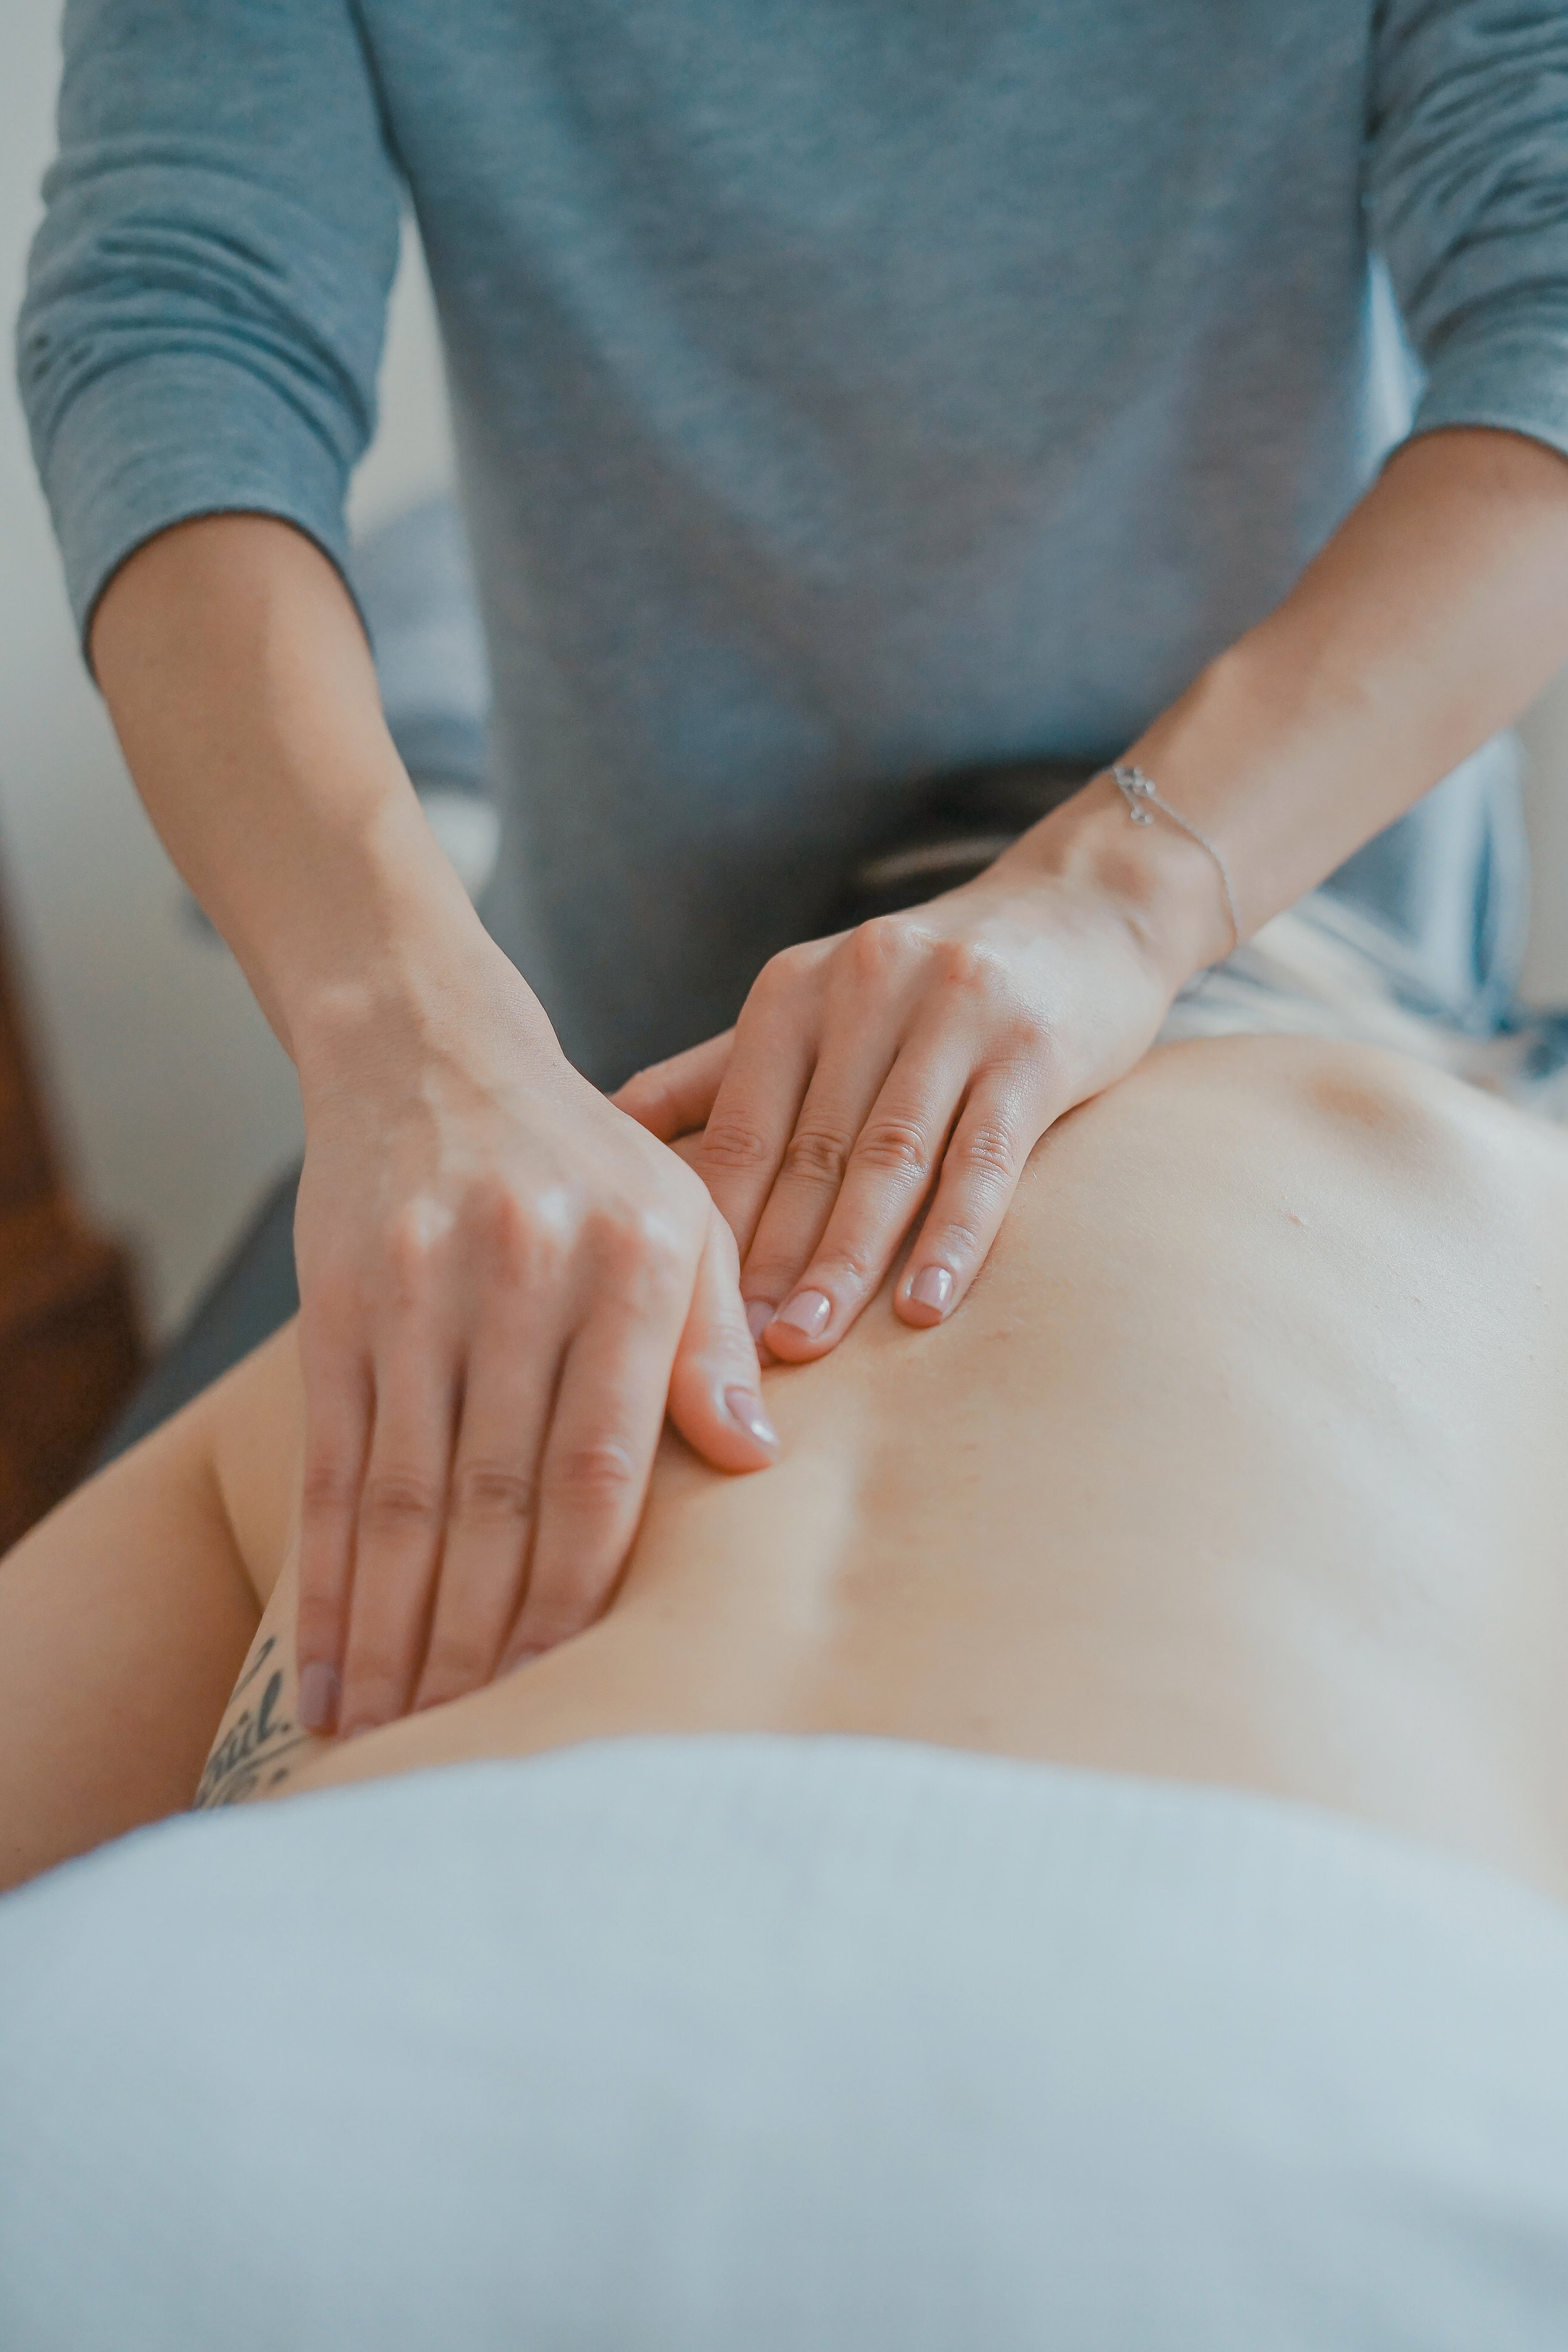 - Swedish massage uses firm but gentle pressure to promote relaxation, ease muscle tension and create other health benefits. It is a classic massage that will ease your stress and allow you to slip into a calm state of relaxation.